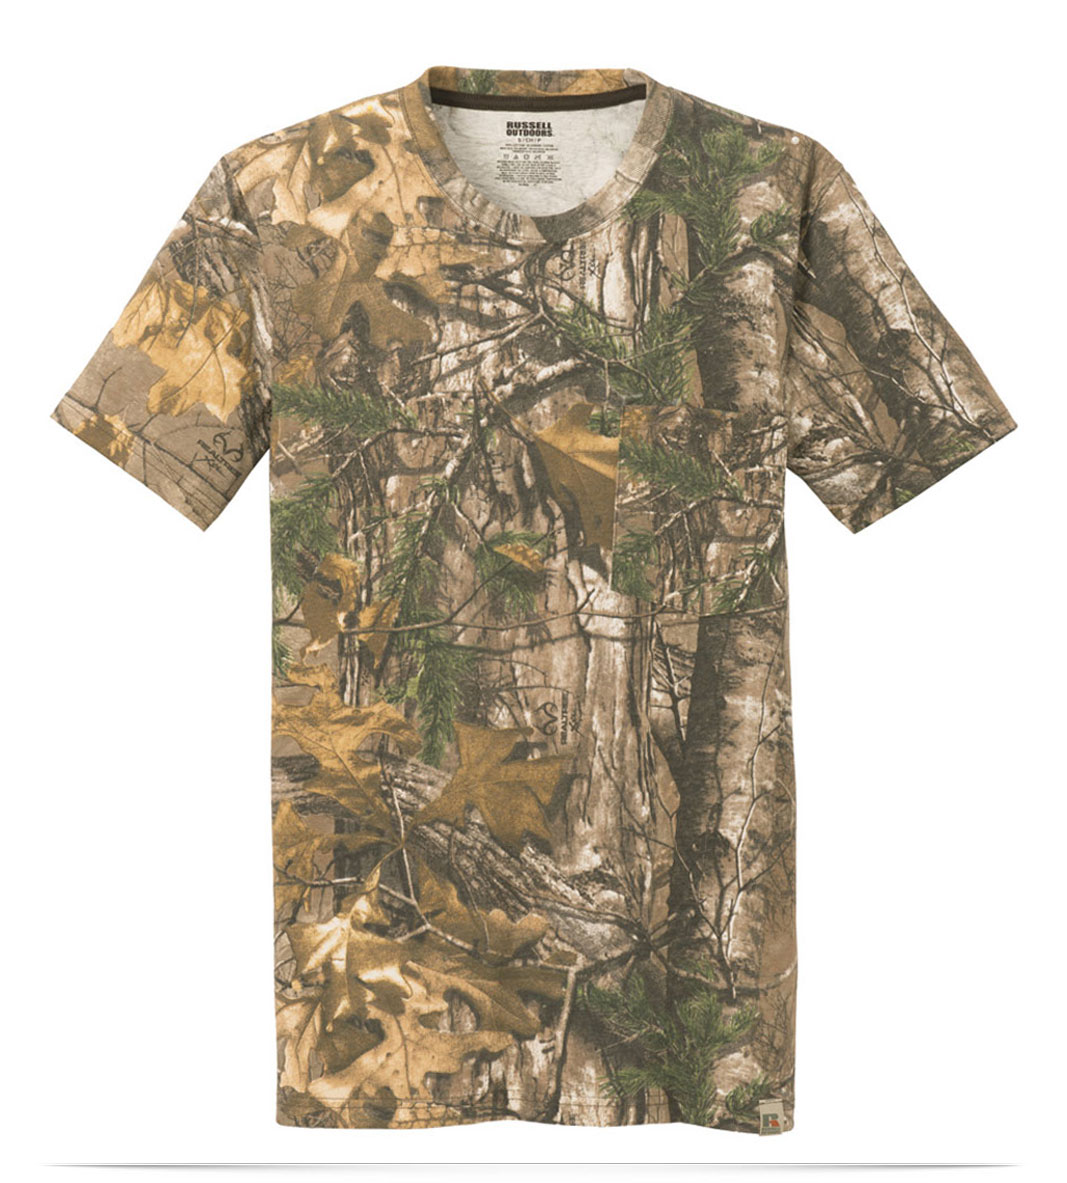 Custom Russell Outdoors 100% Cotton T-Shirt with Pocket